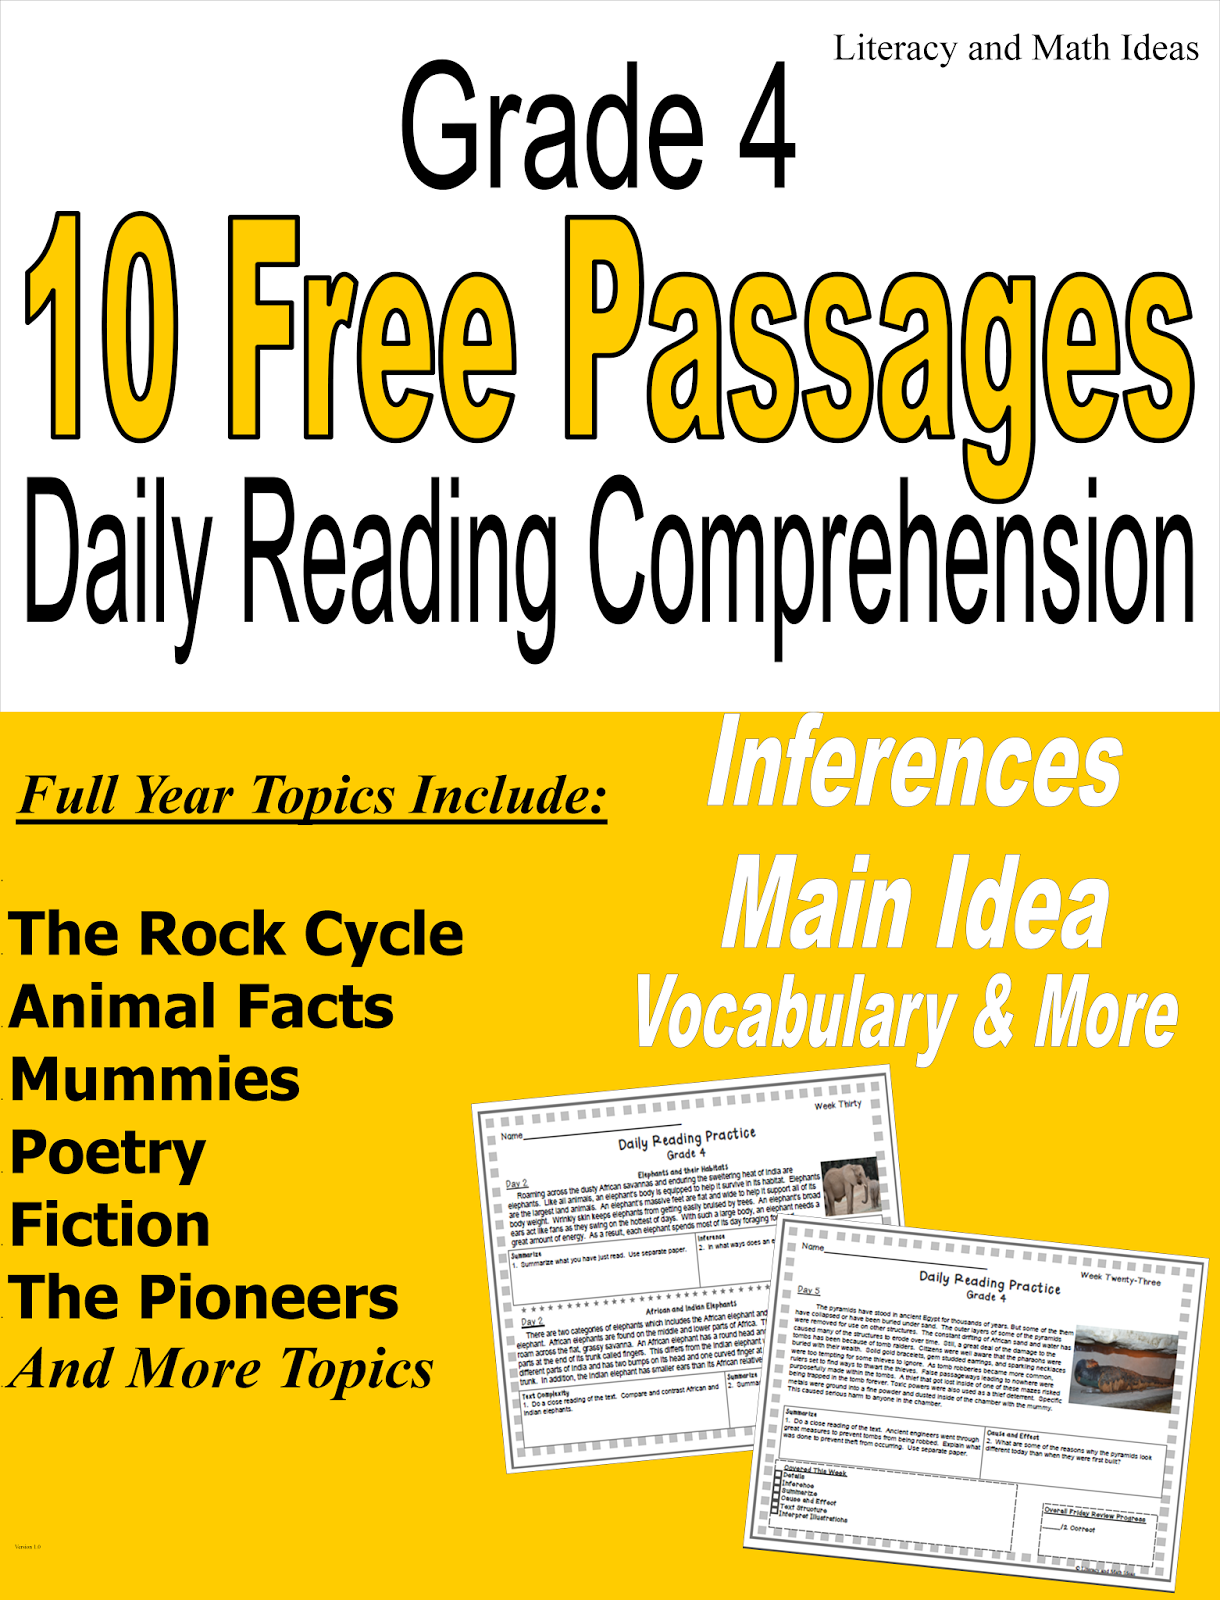 - Literacy & Math Ideas: Free Grade 4 Daily Reading Comprehension